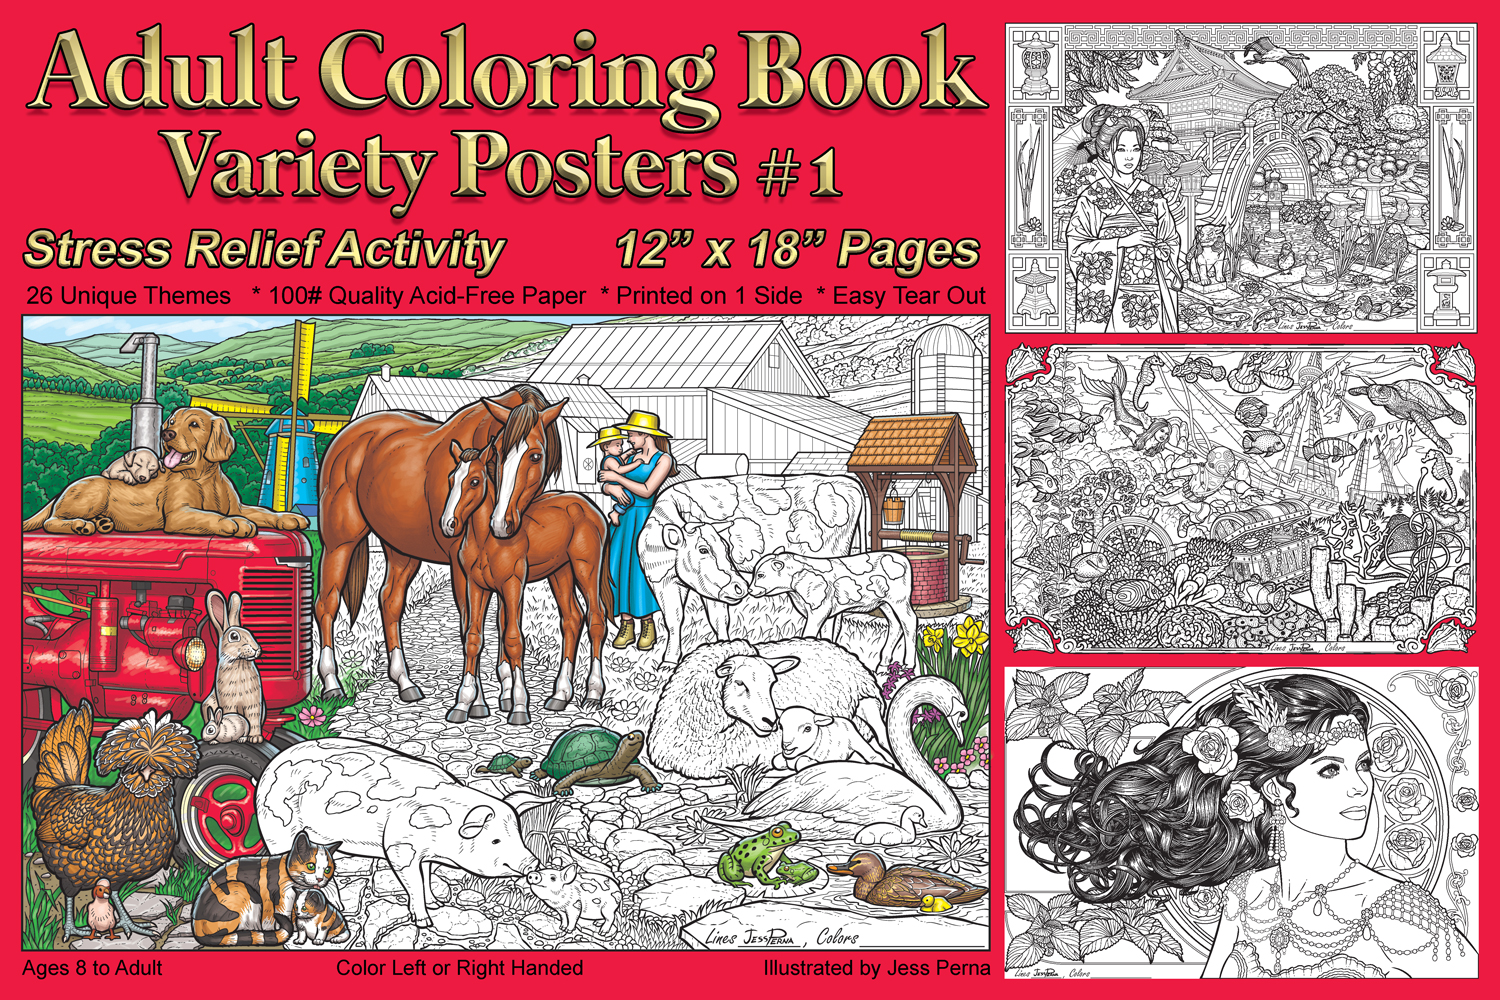 The coloring book poster - Adult Coloring Book Variety Posters 1